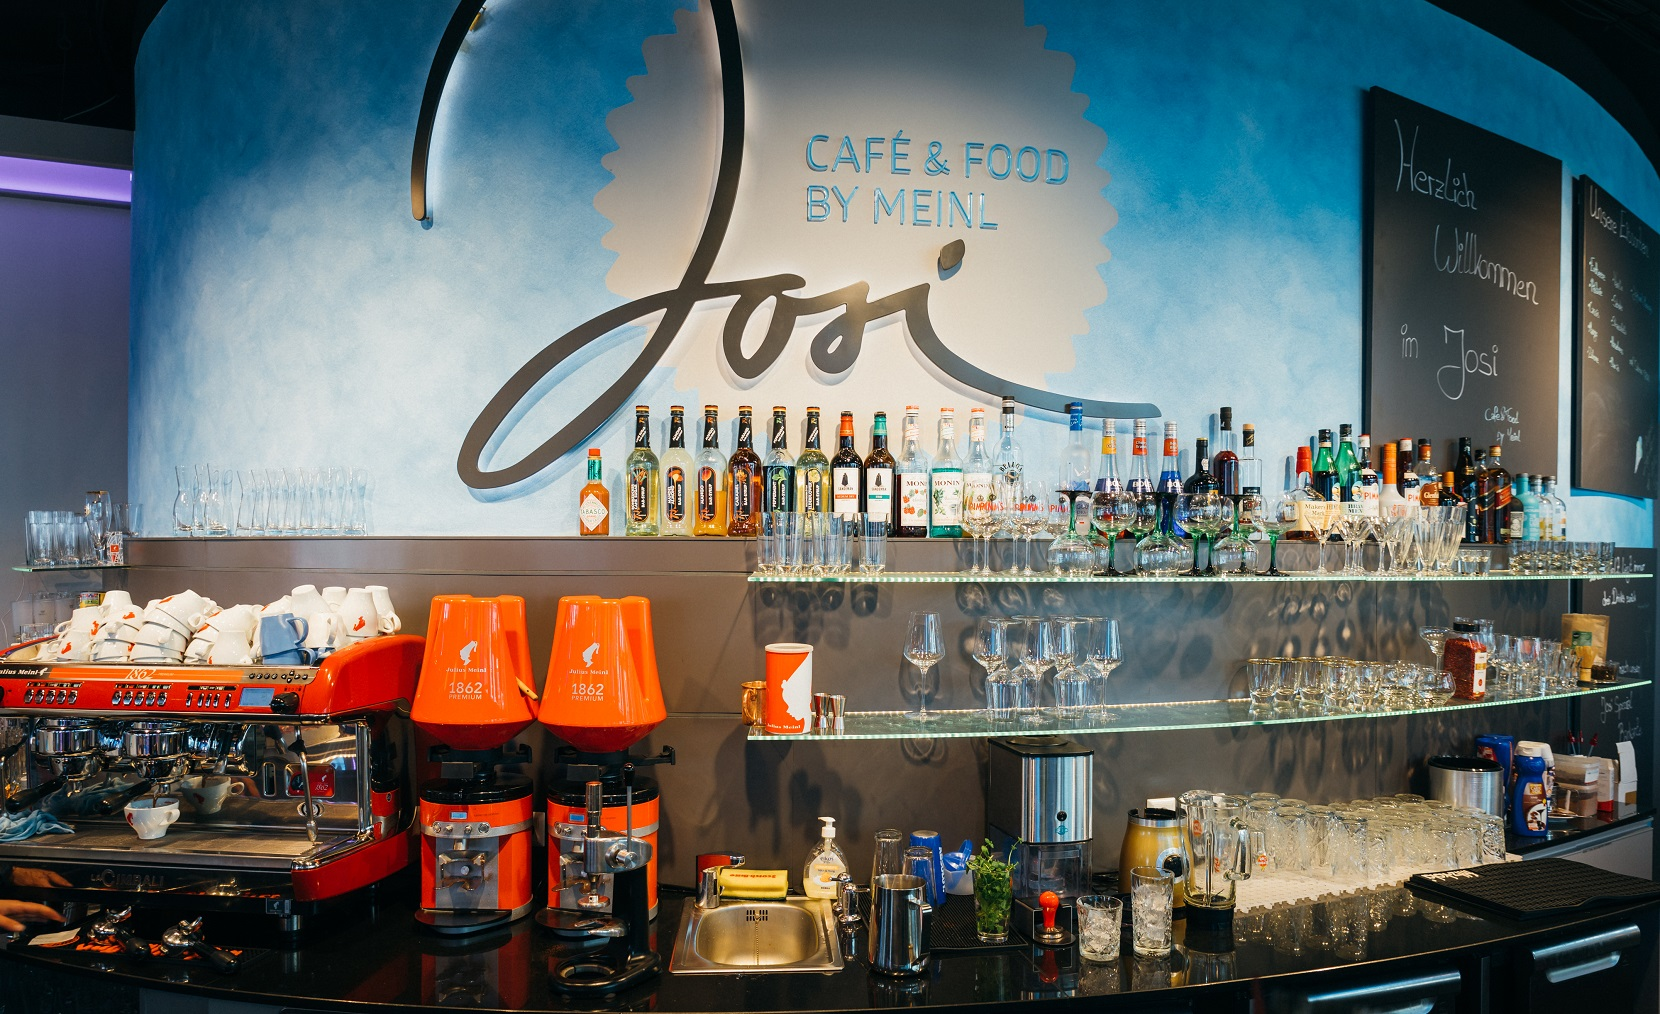 Josi Cafe, Bar & Food - Bavaria